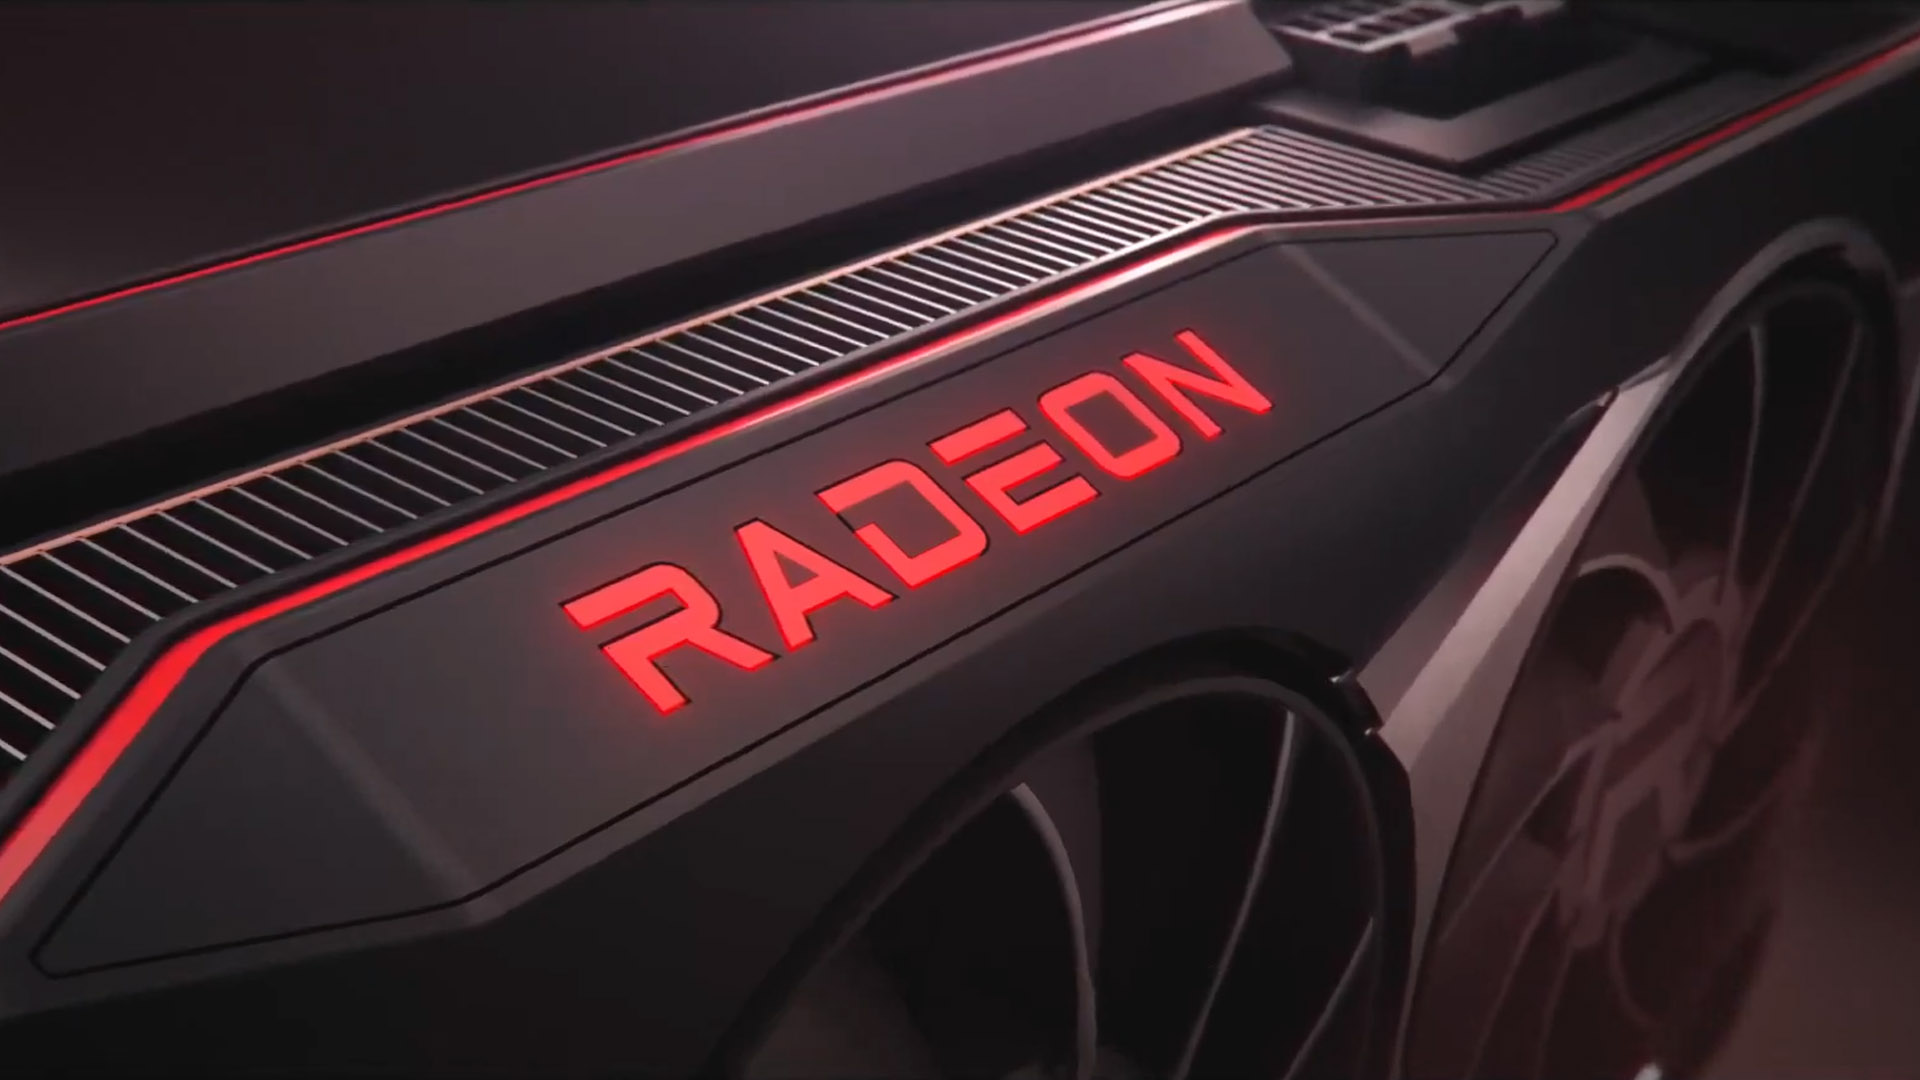 AMD promises to reduce Radeon RX 6000 shortages by ramping up production